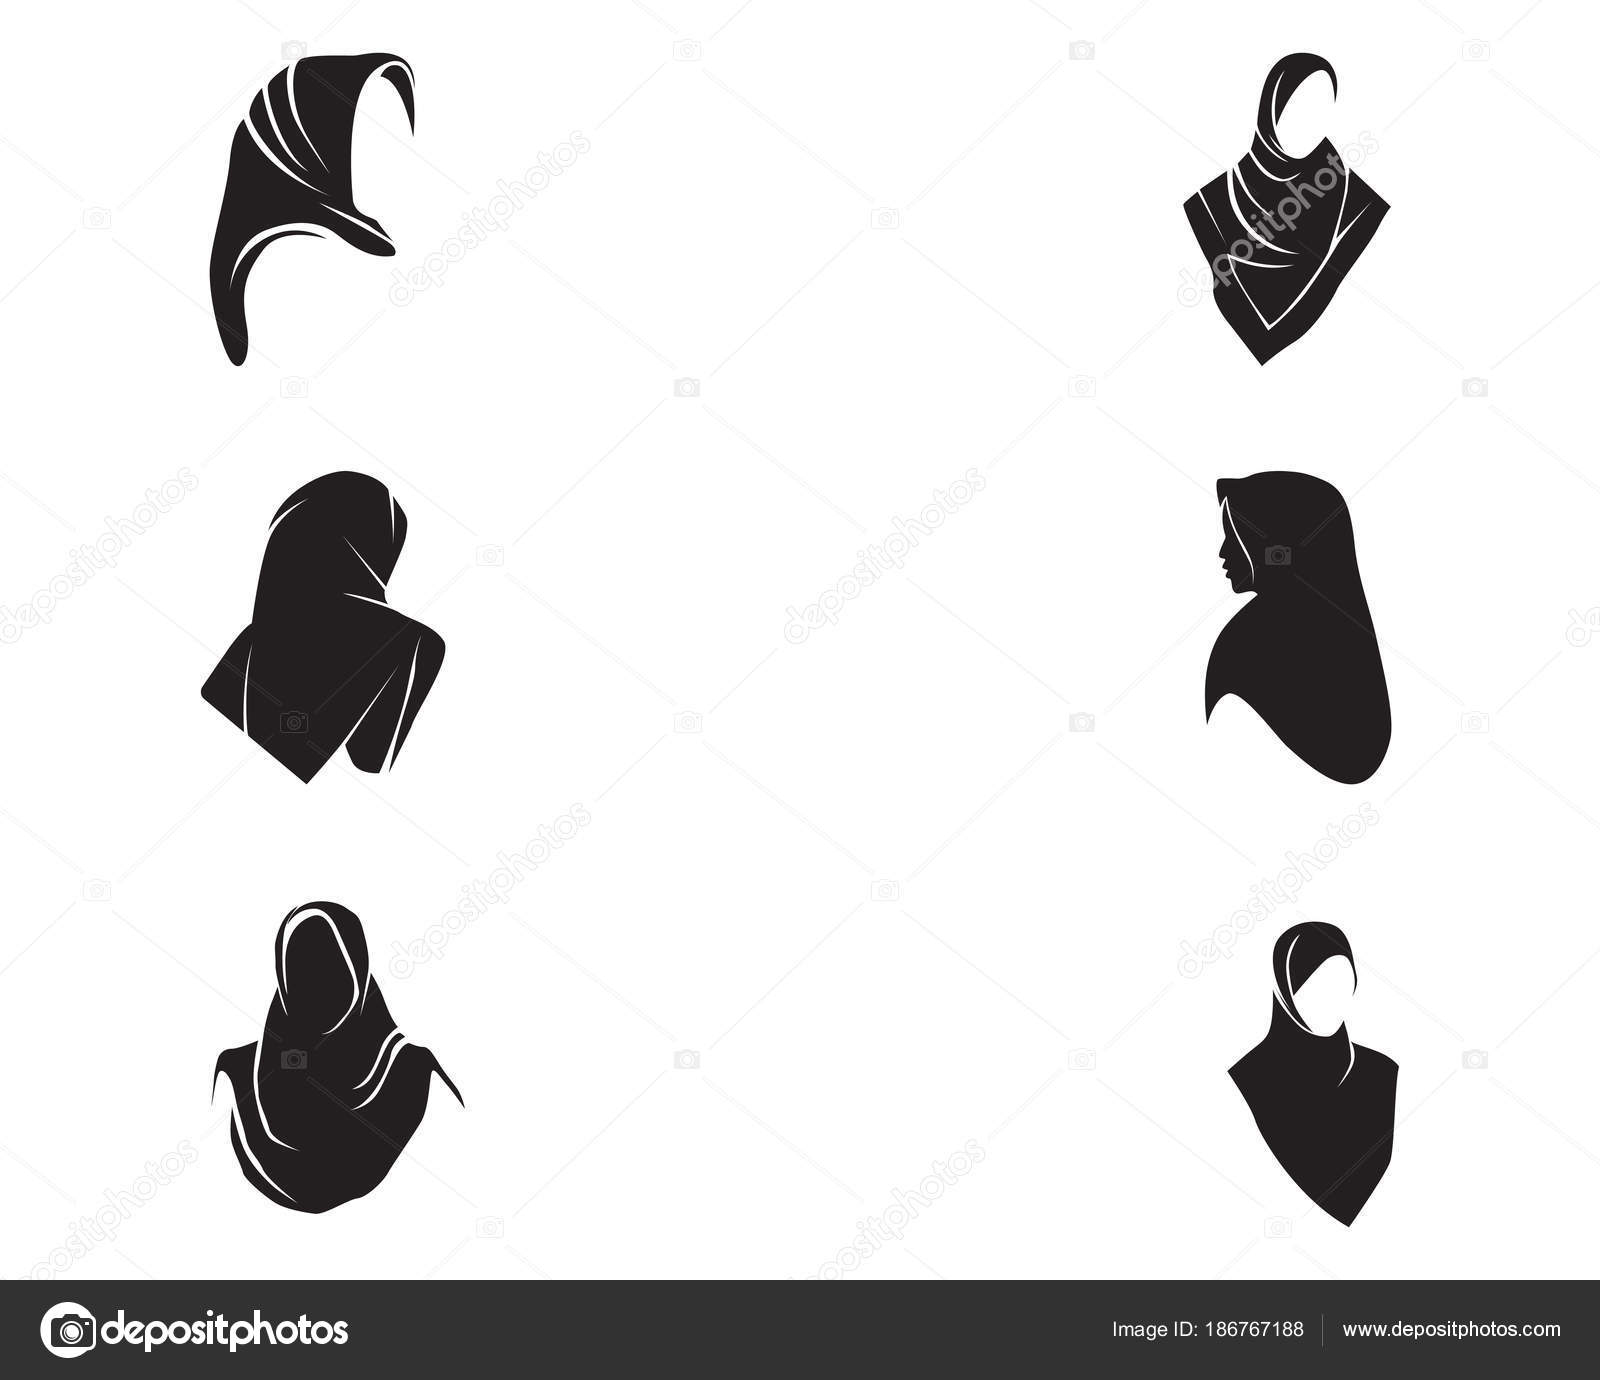 Hijab women black silhouette vector icons app \u2014 Stock Vector